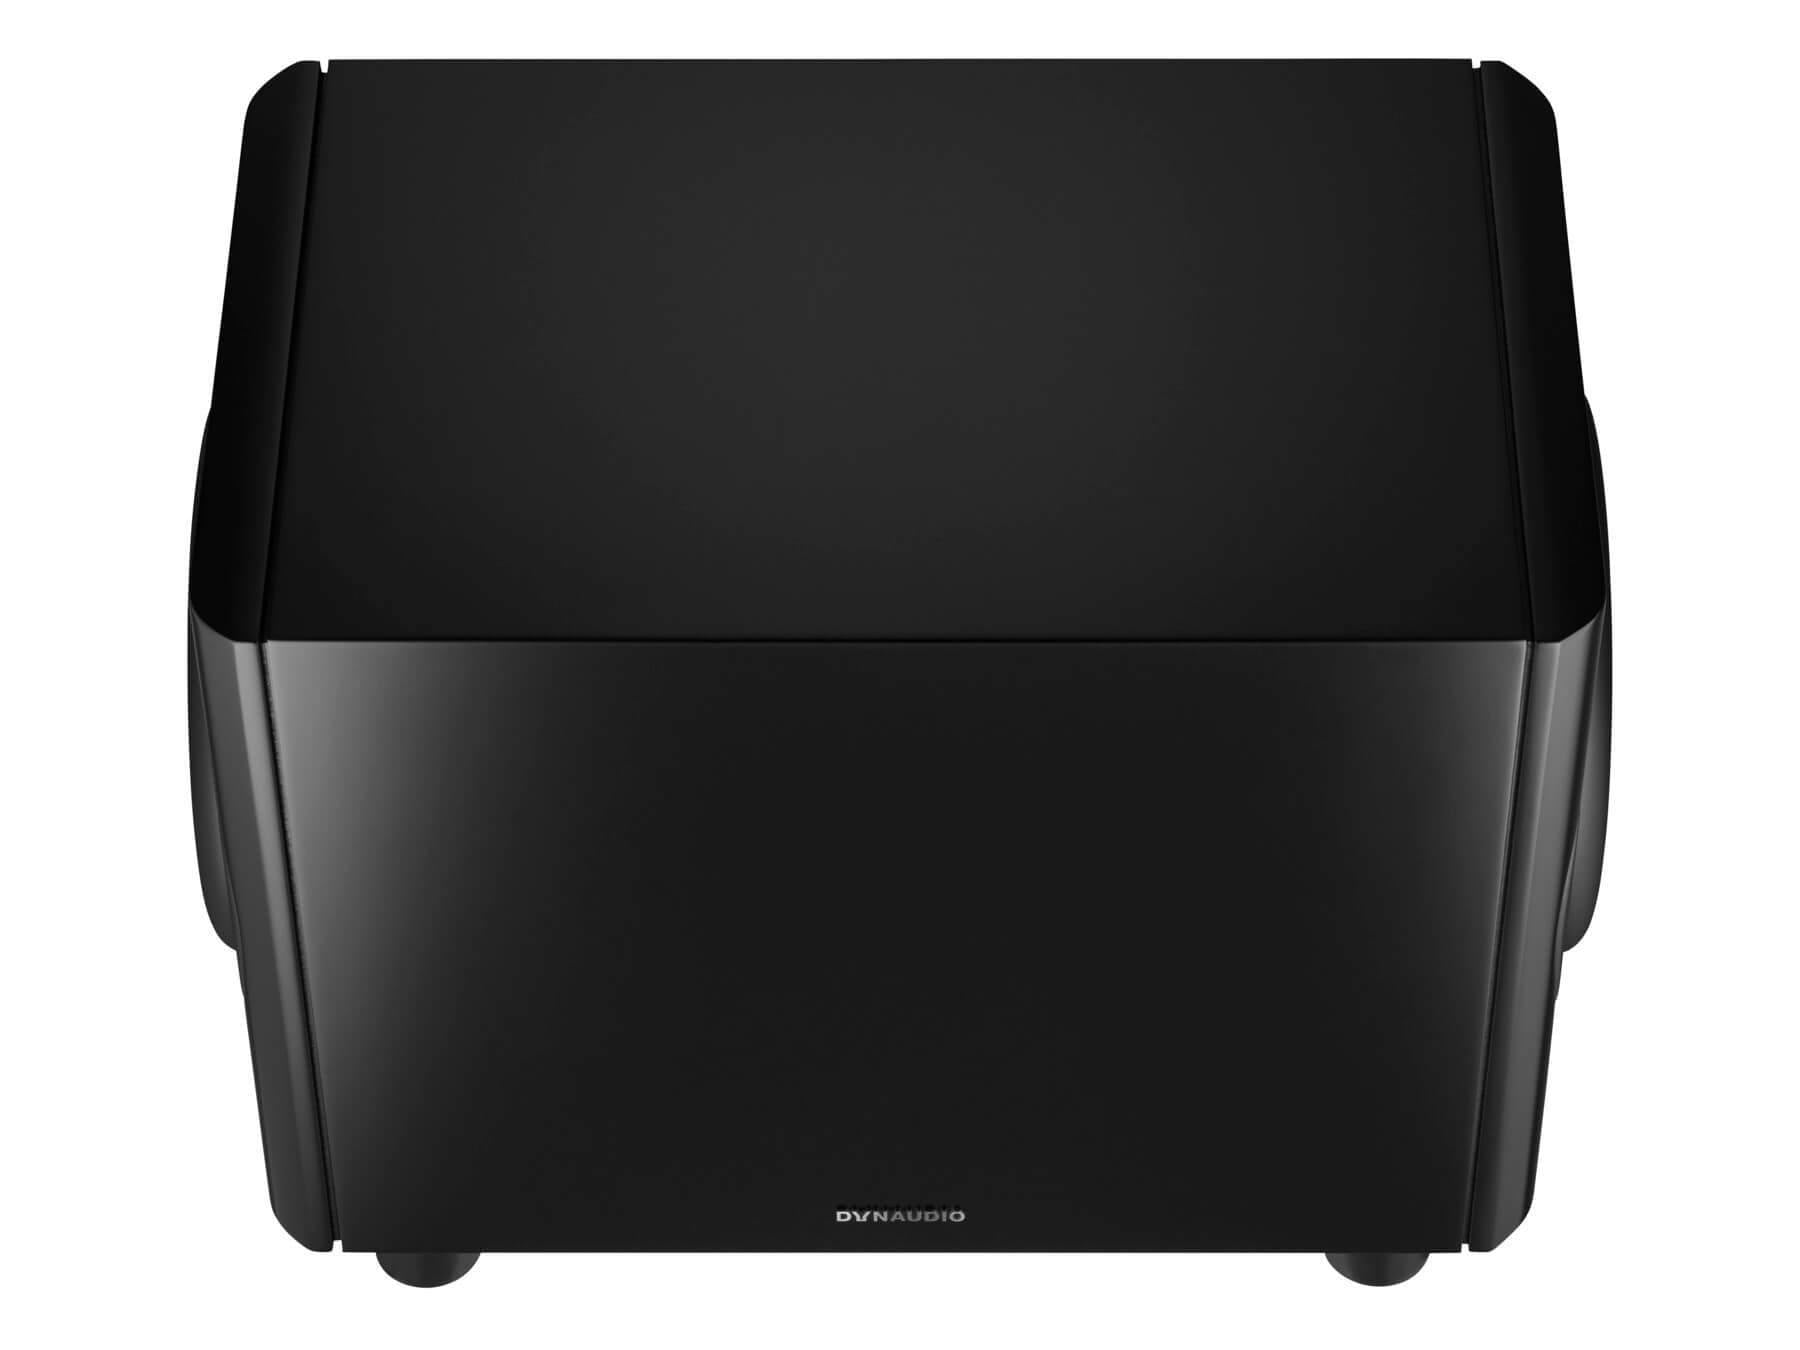 Dynaudio Sub 6 - Home Audio Subwoofer - Black Top